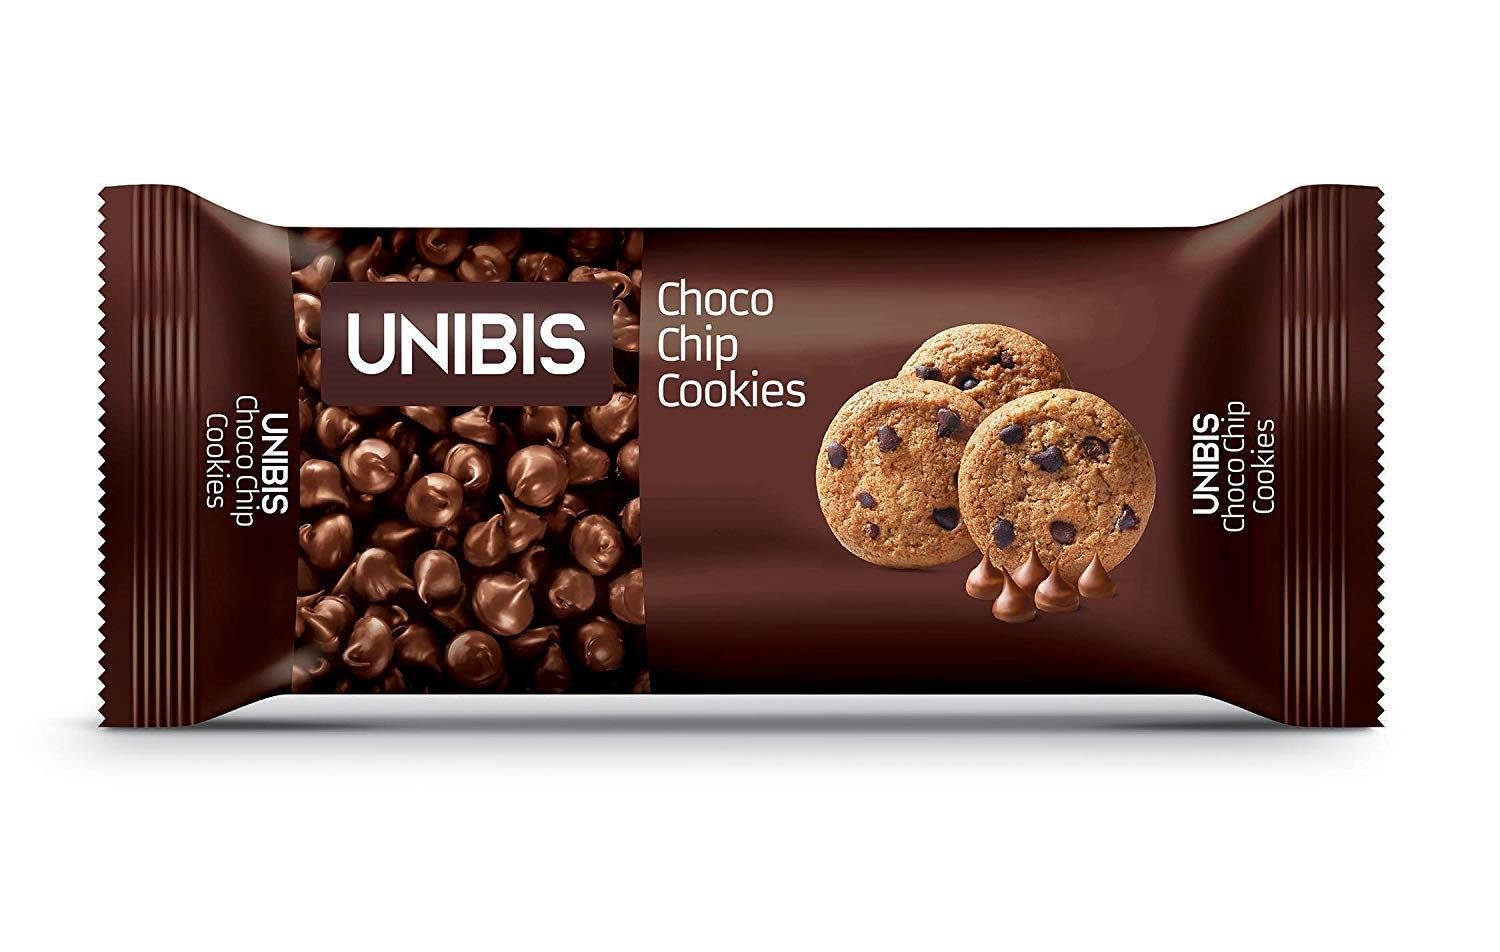 UNIBIS Chocolate Chip Cookies